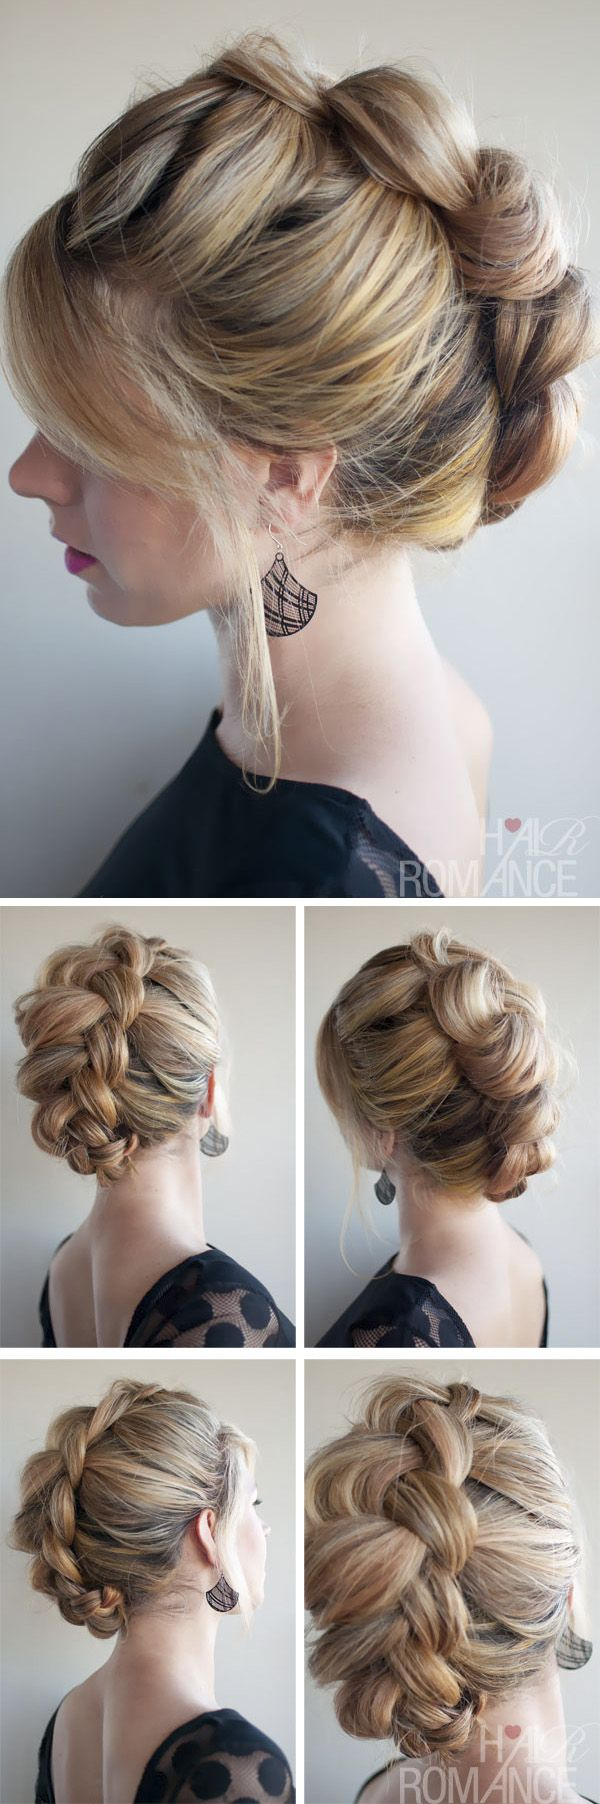 best 25+ easy elegant hairstyles ideas on pinterest | work